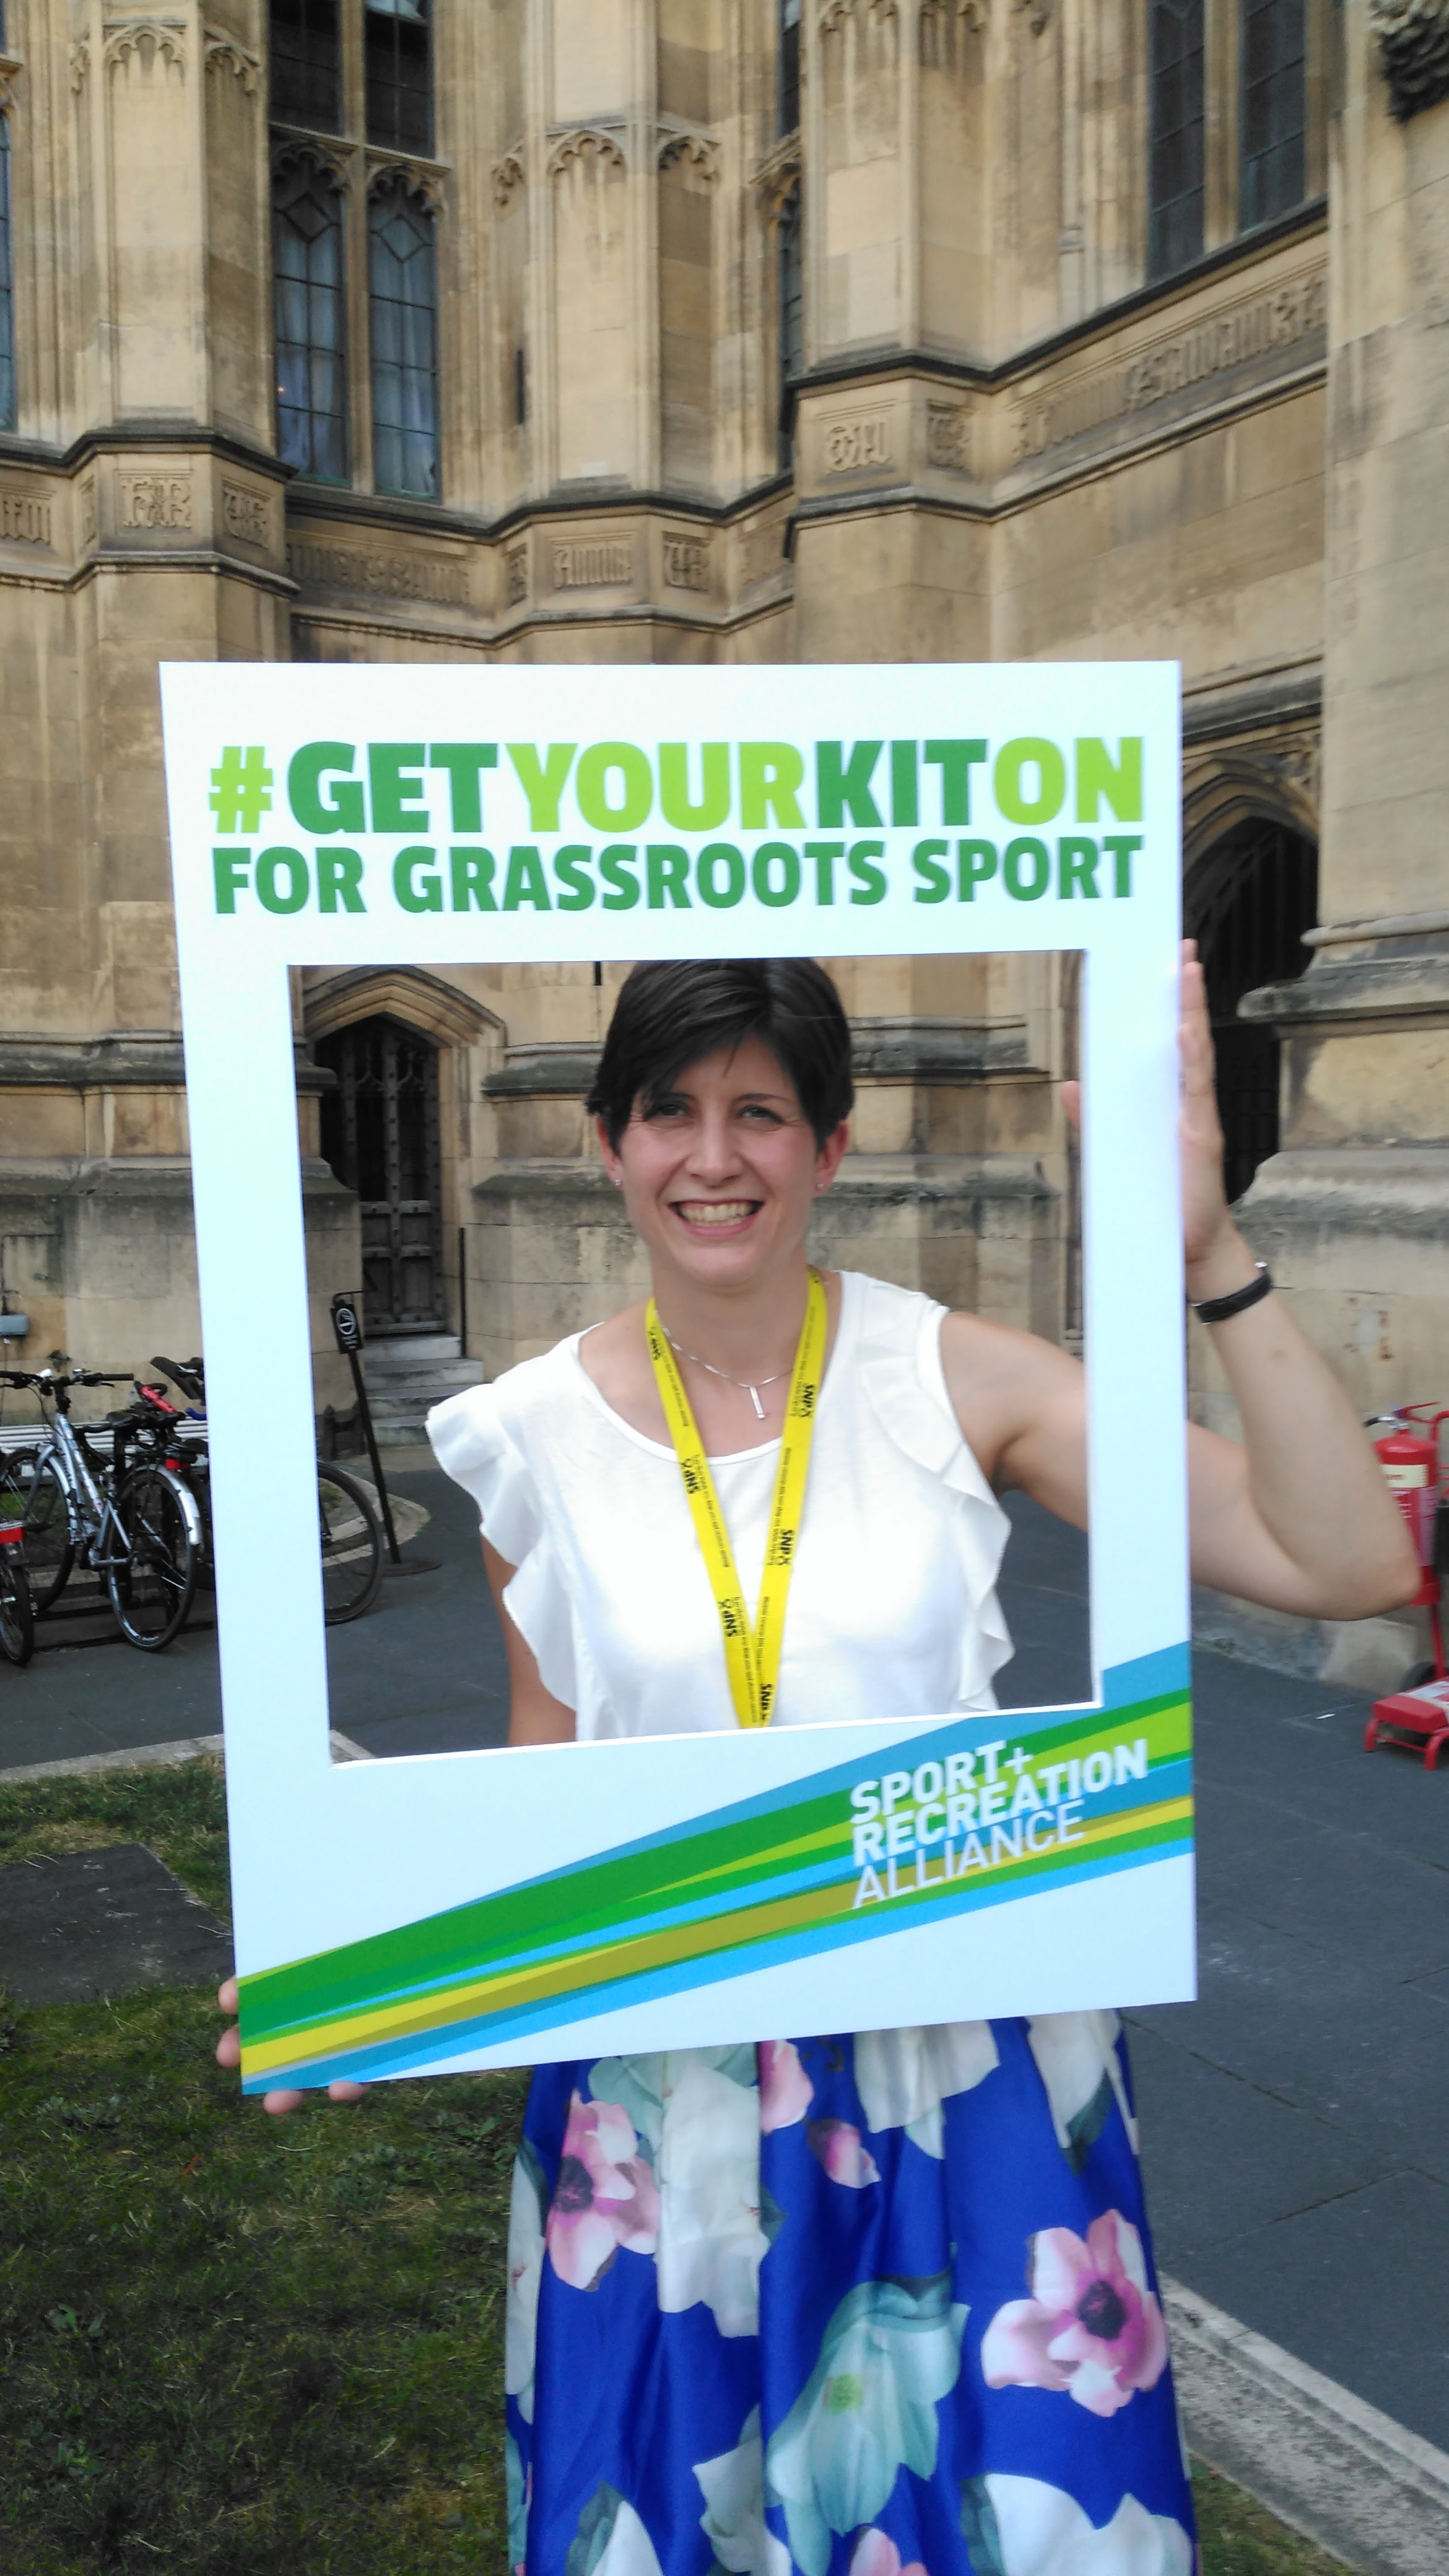 Alison Thewliss MP supports the Get Your Kit On campaign for grassroots sport